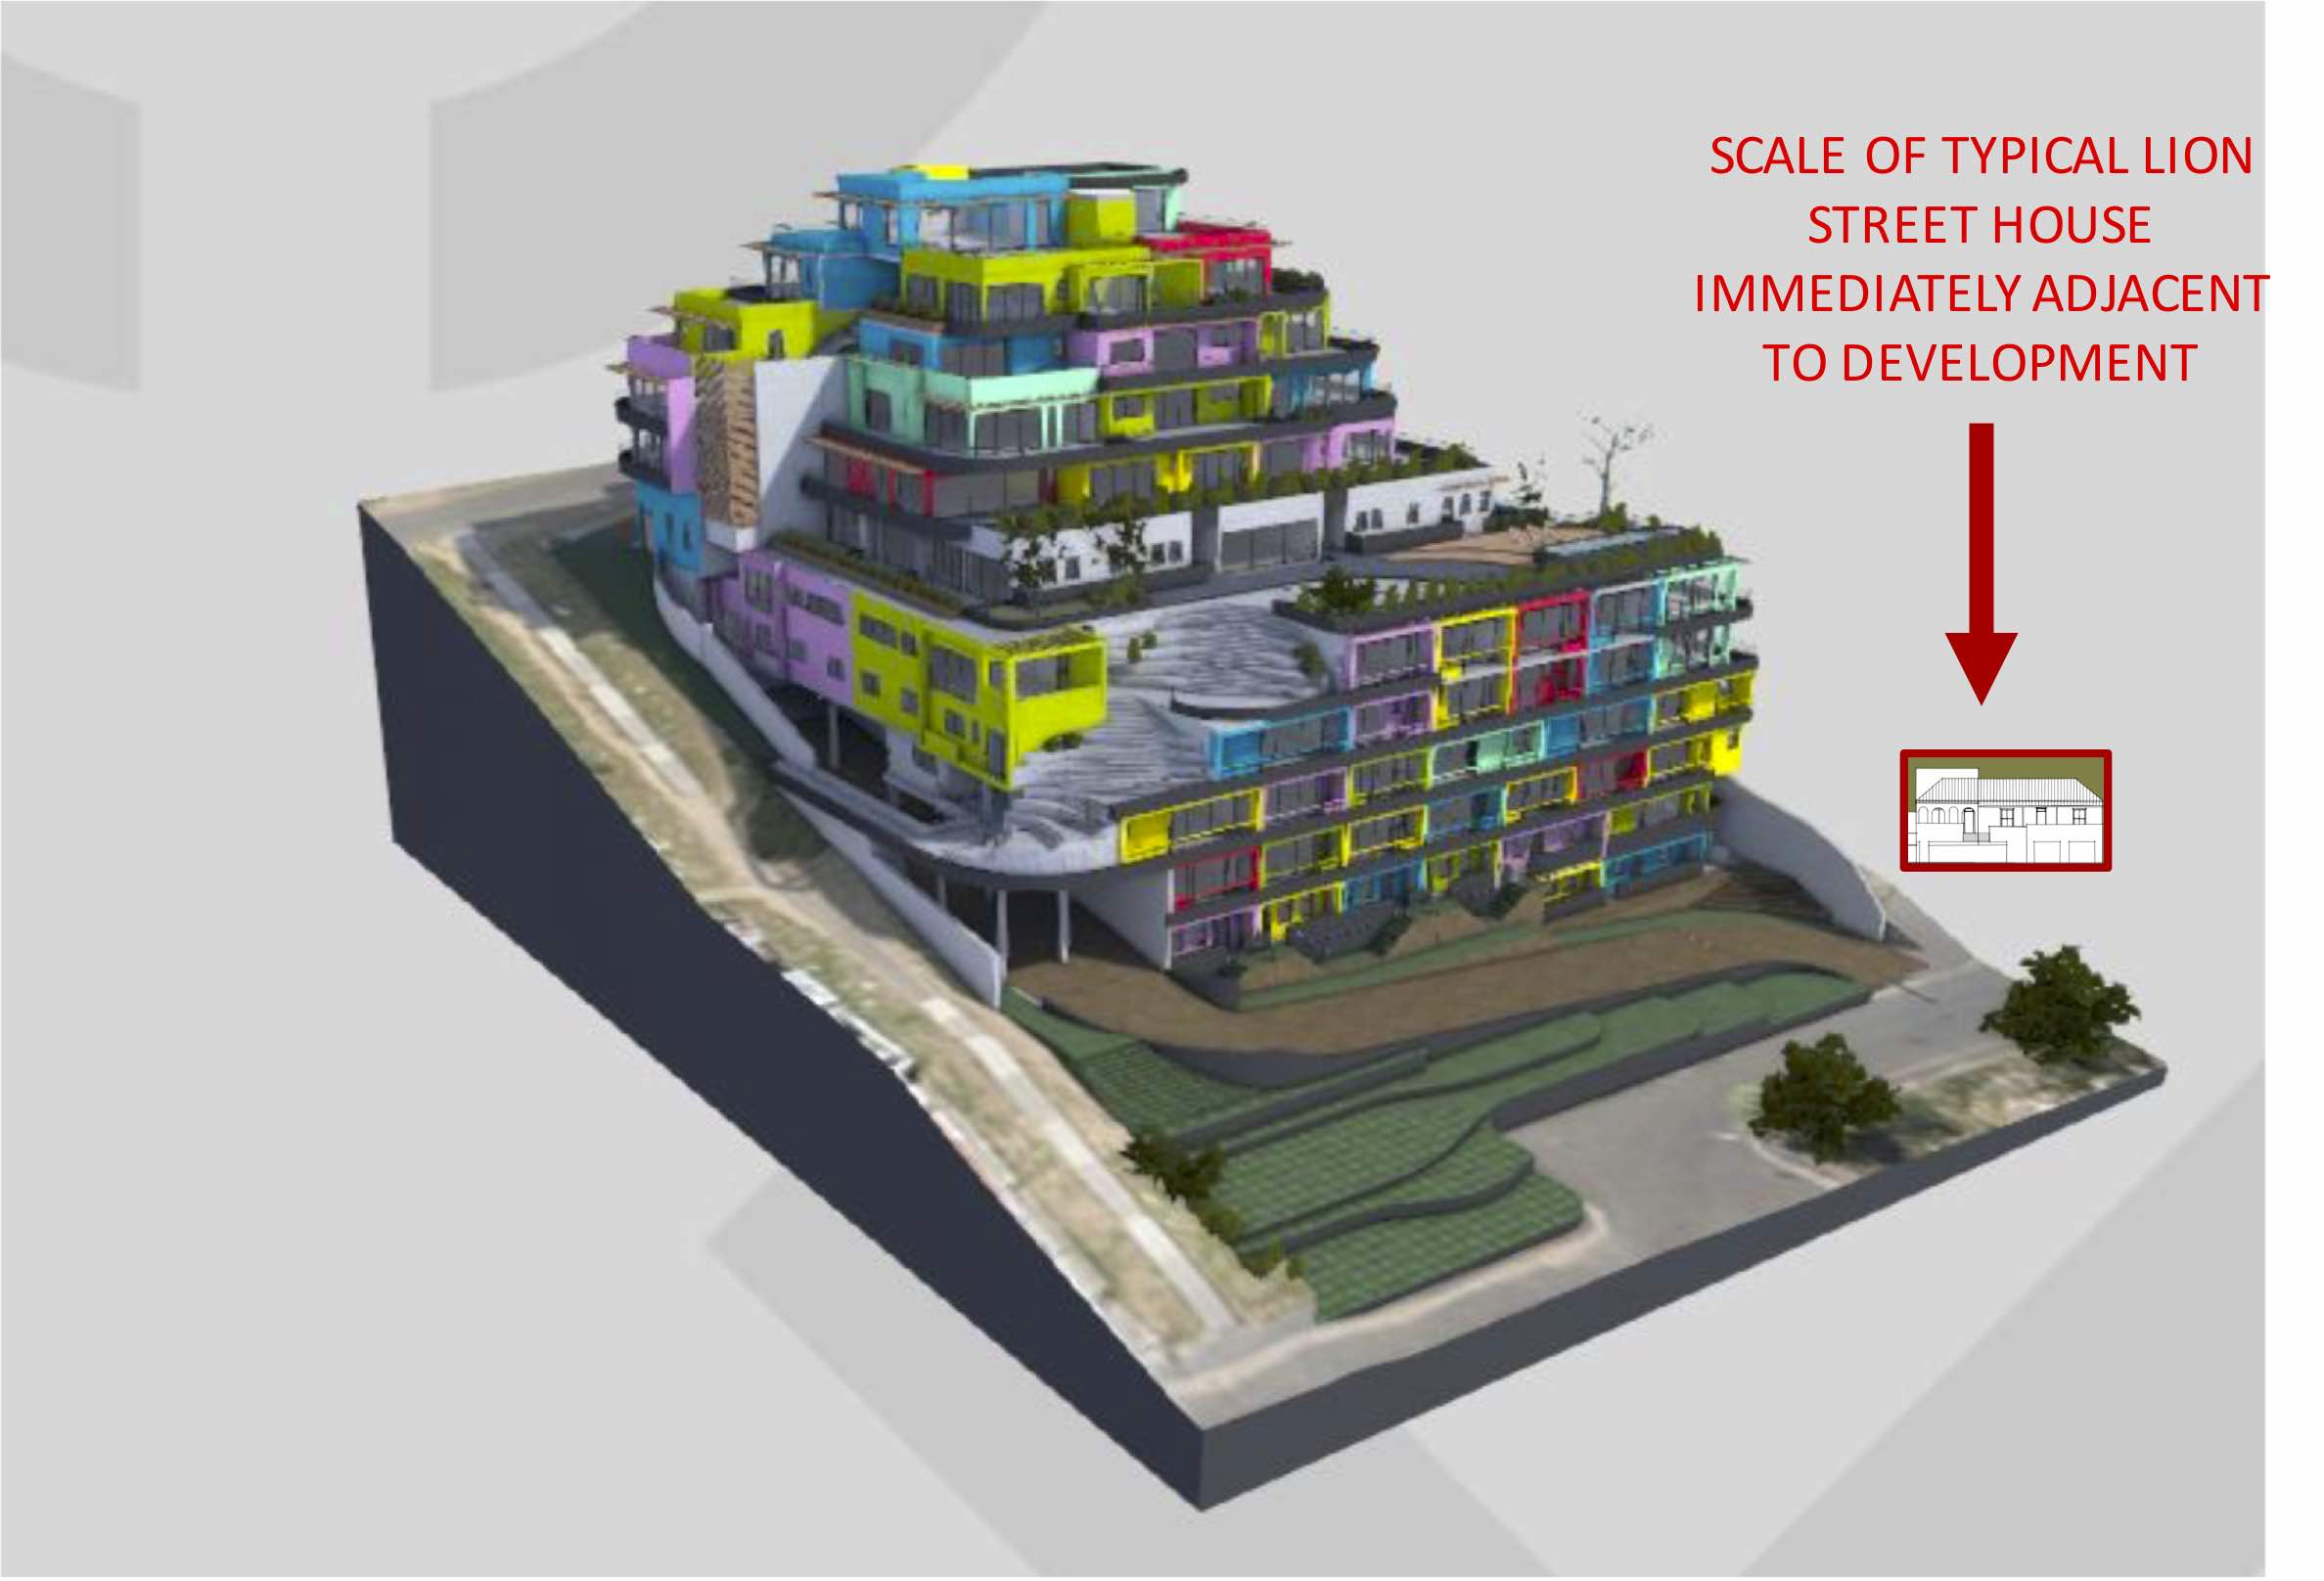 Image from Annexures provided by the developer to motivate their application to the City of Cape Town - the current proposal has retaining walls and a car ramp along the street edge.